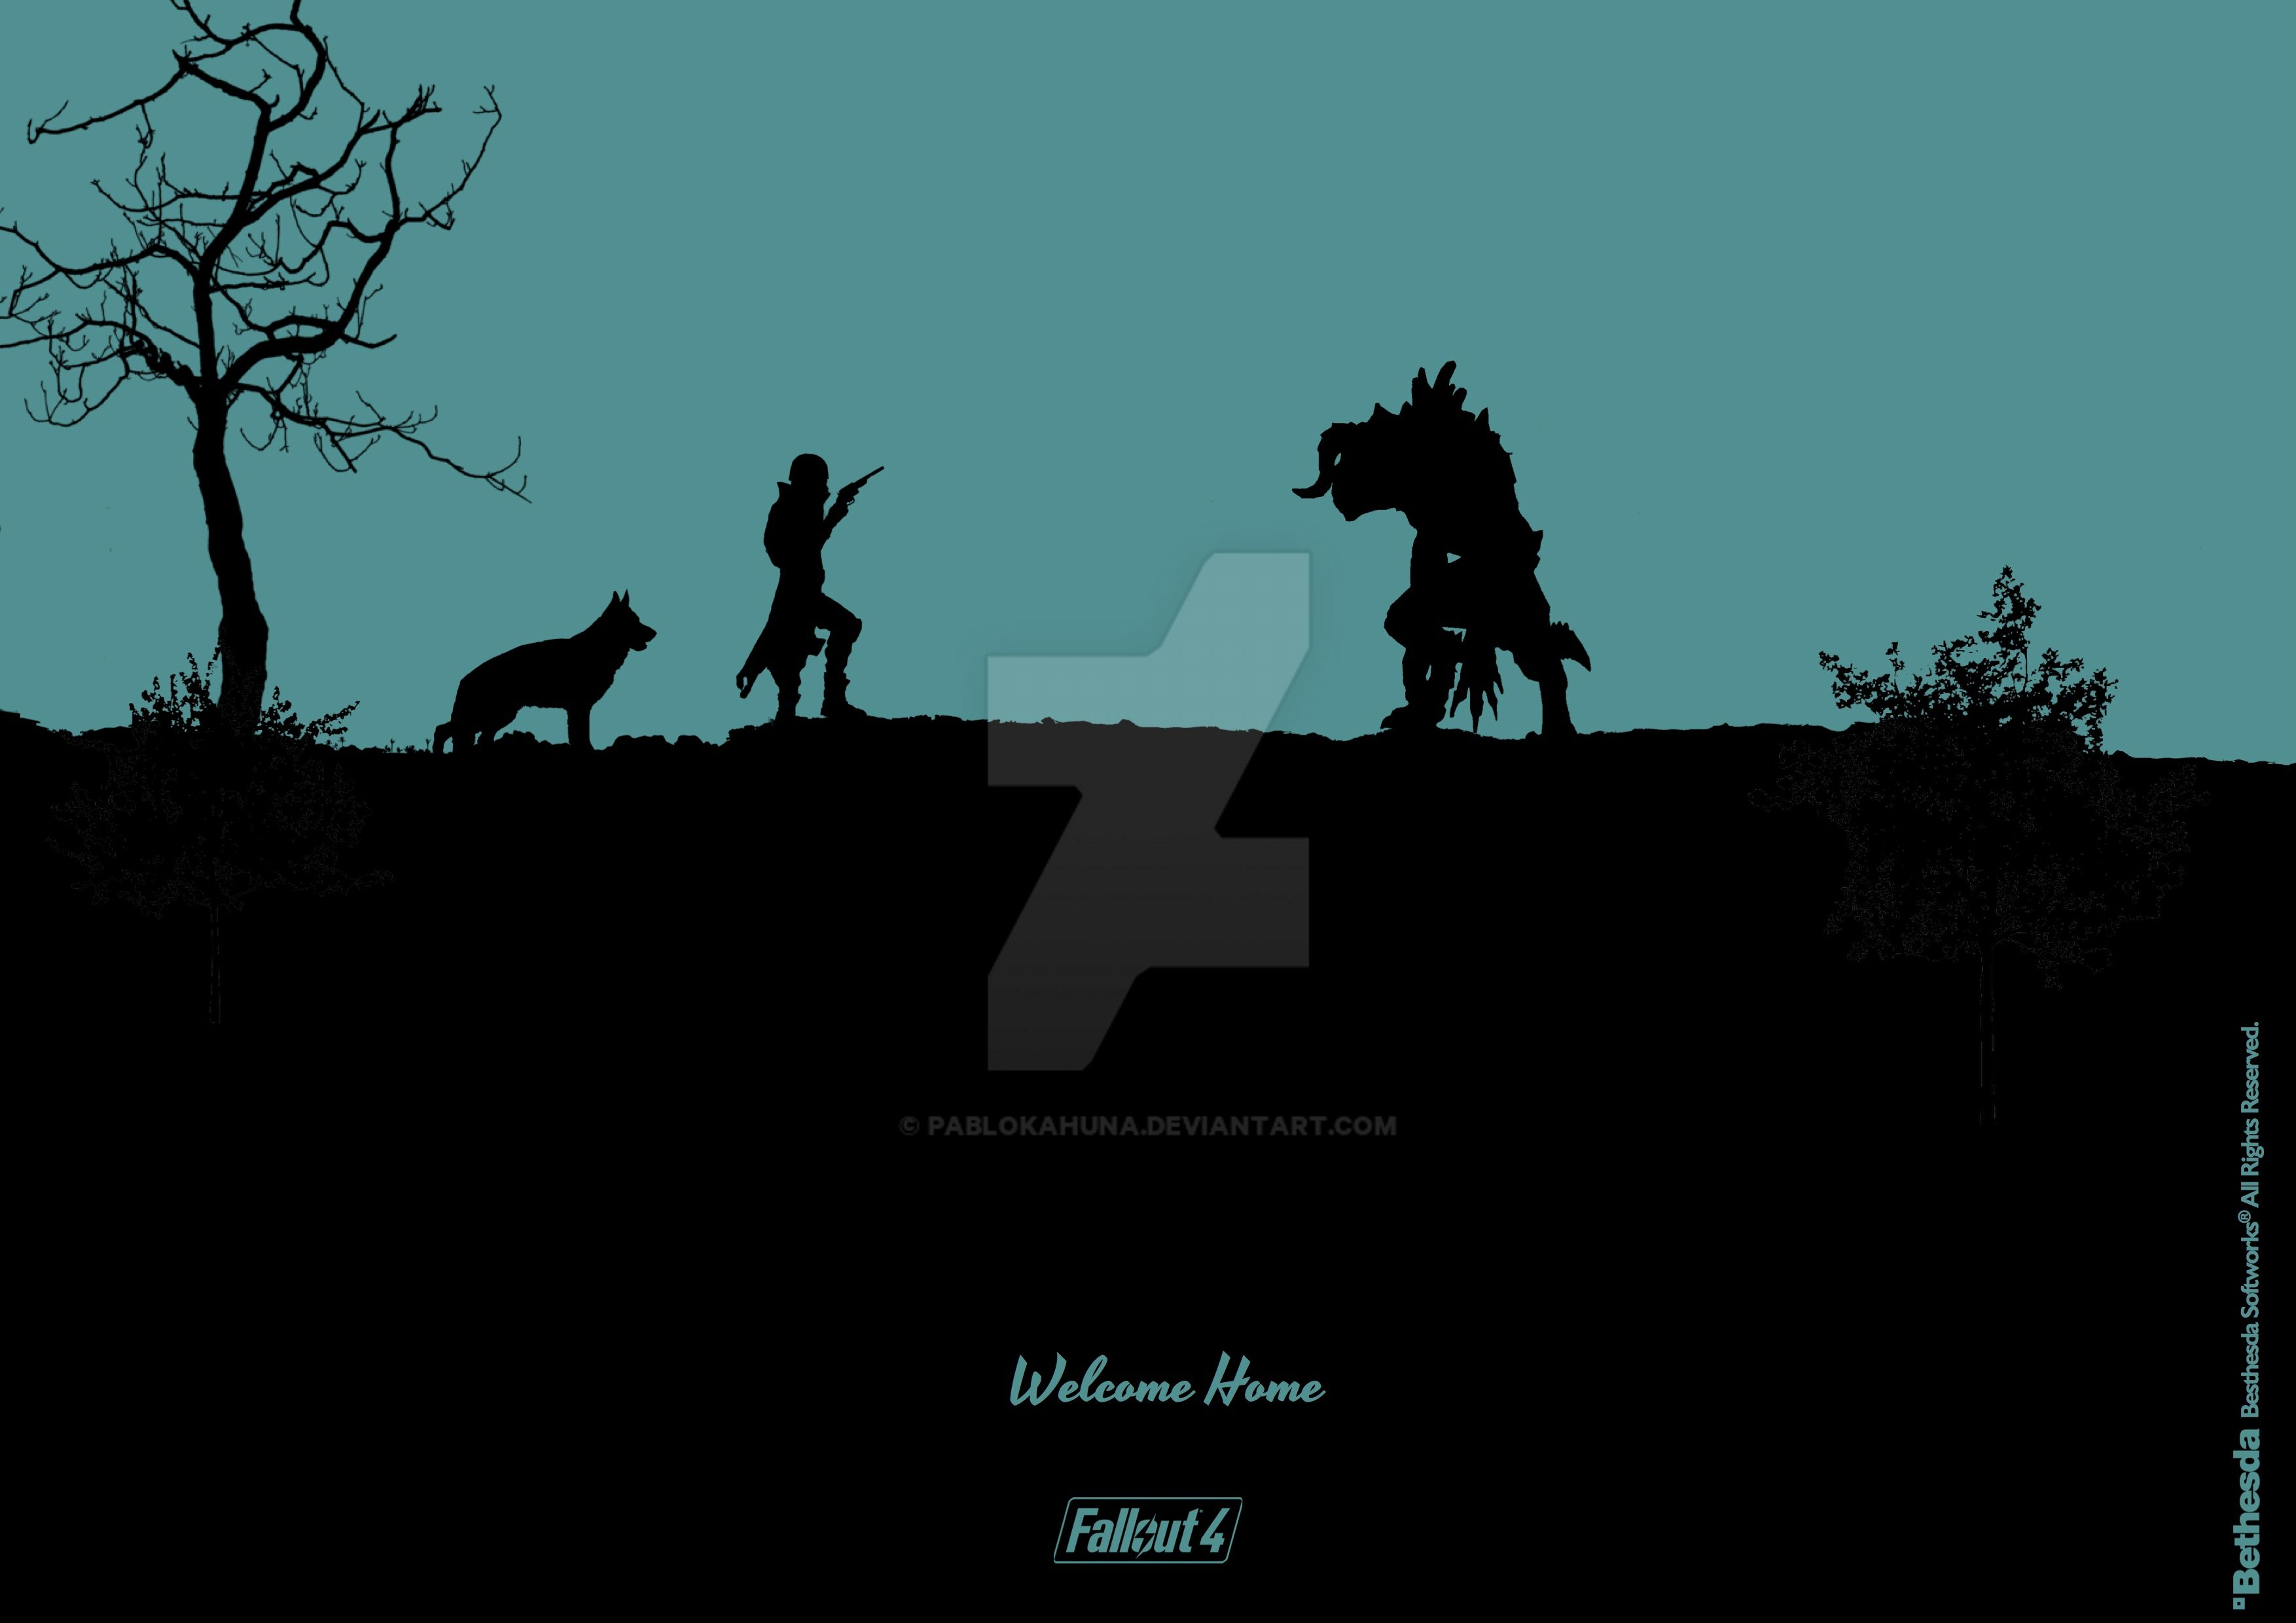 Fallout 4 - Welcome Home by June22nd on DeviantArt